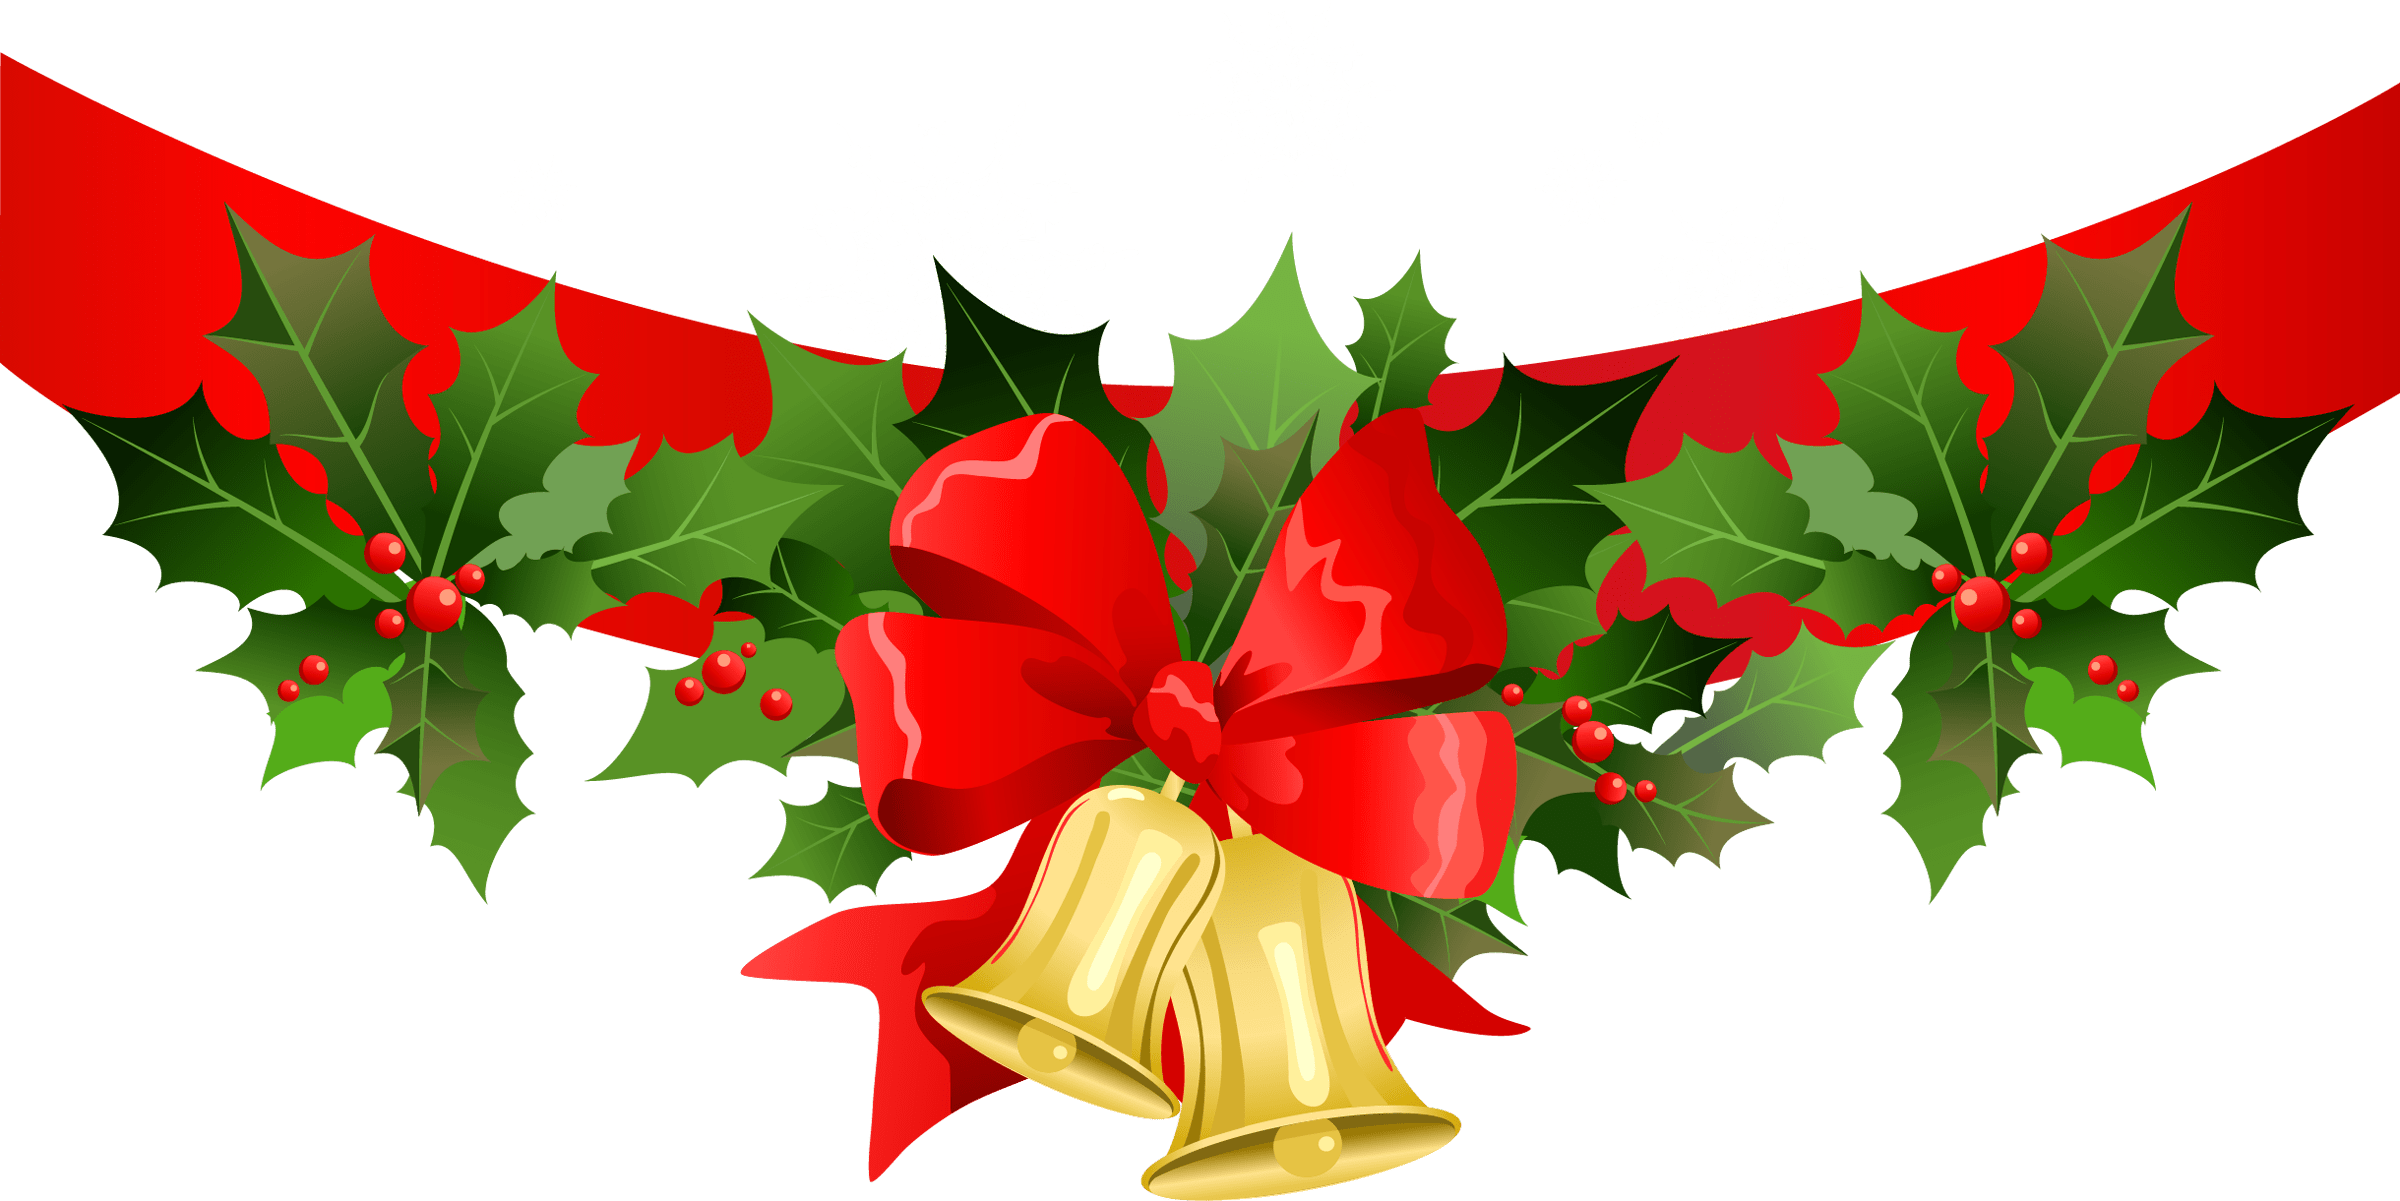 Christmas header clipart clip art freeuse Free Christmas Banner Clipart – Merry Christmas And Happy New Year 2018 clip art freeuse